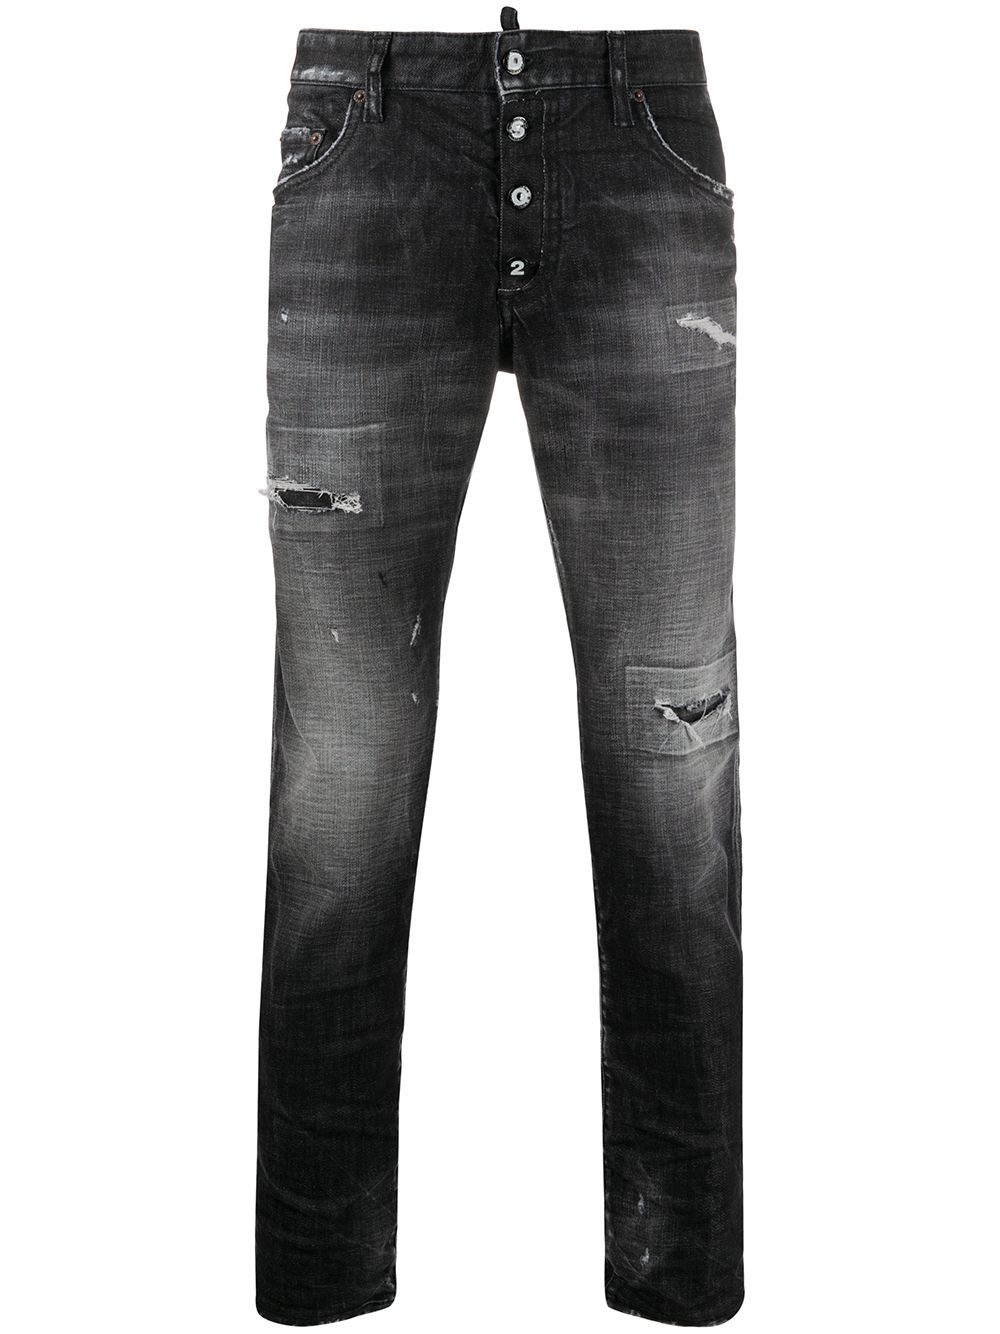 DSQUARED2 Skater Distressed Jeans Black